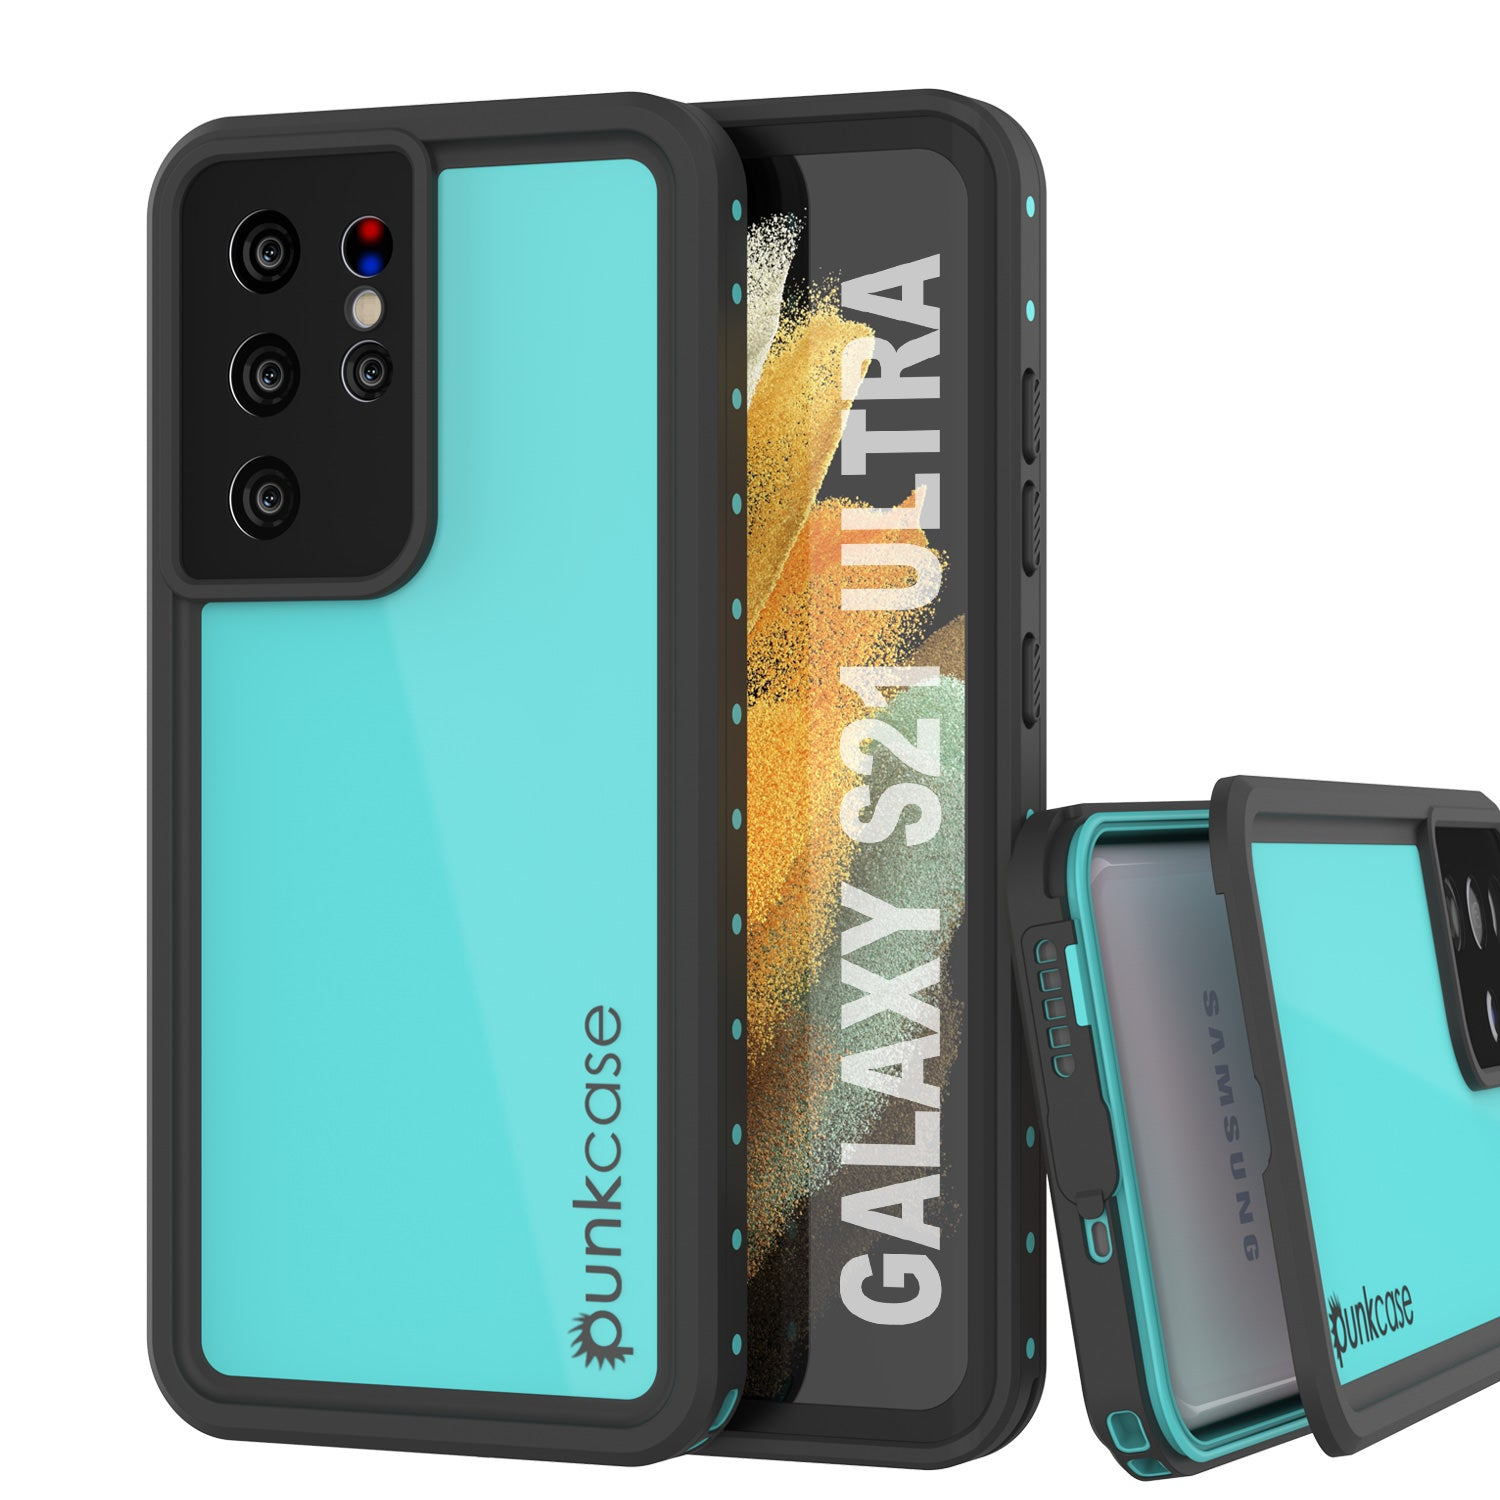 Galaxy S21 Ultra Waterproof Case PunkCase StudStar Teal Thin 6.6ft Underwater IP68 Shock/Snow Proof